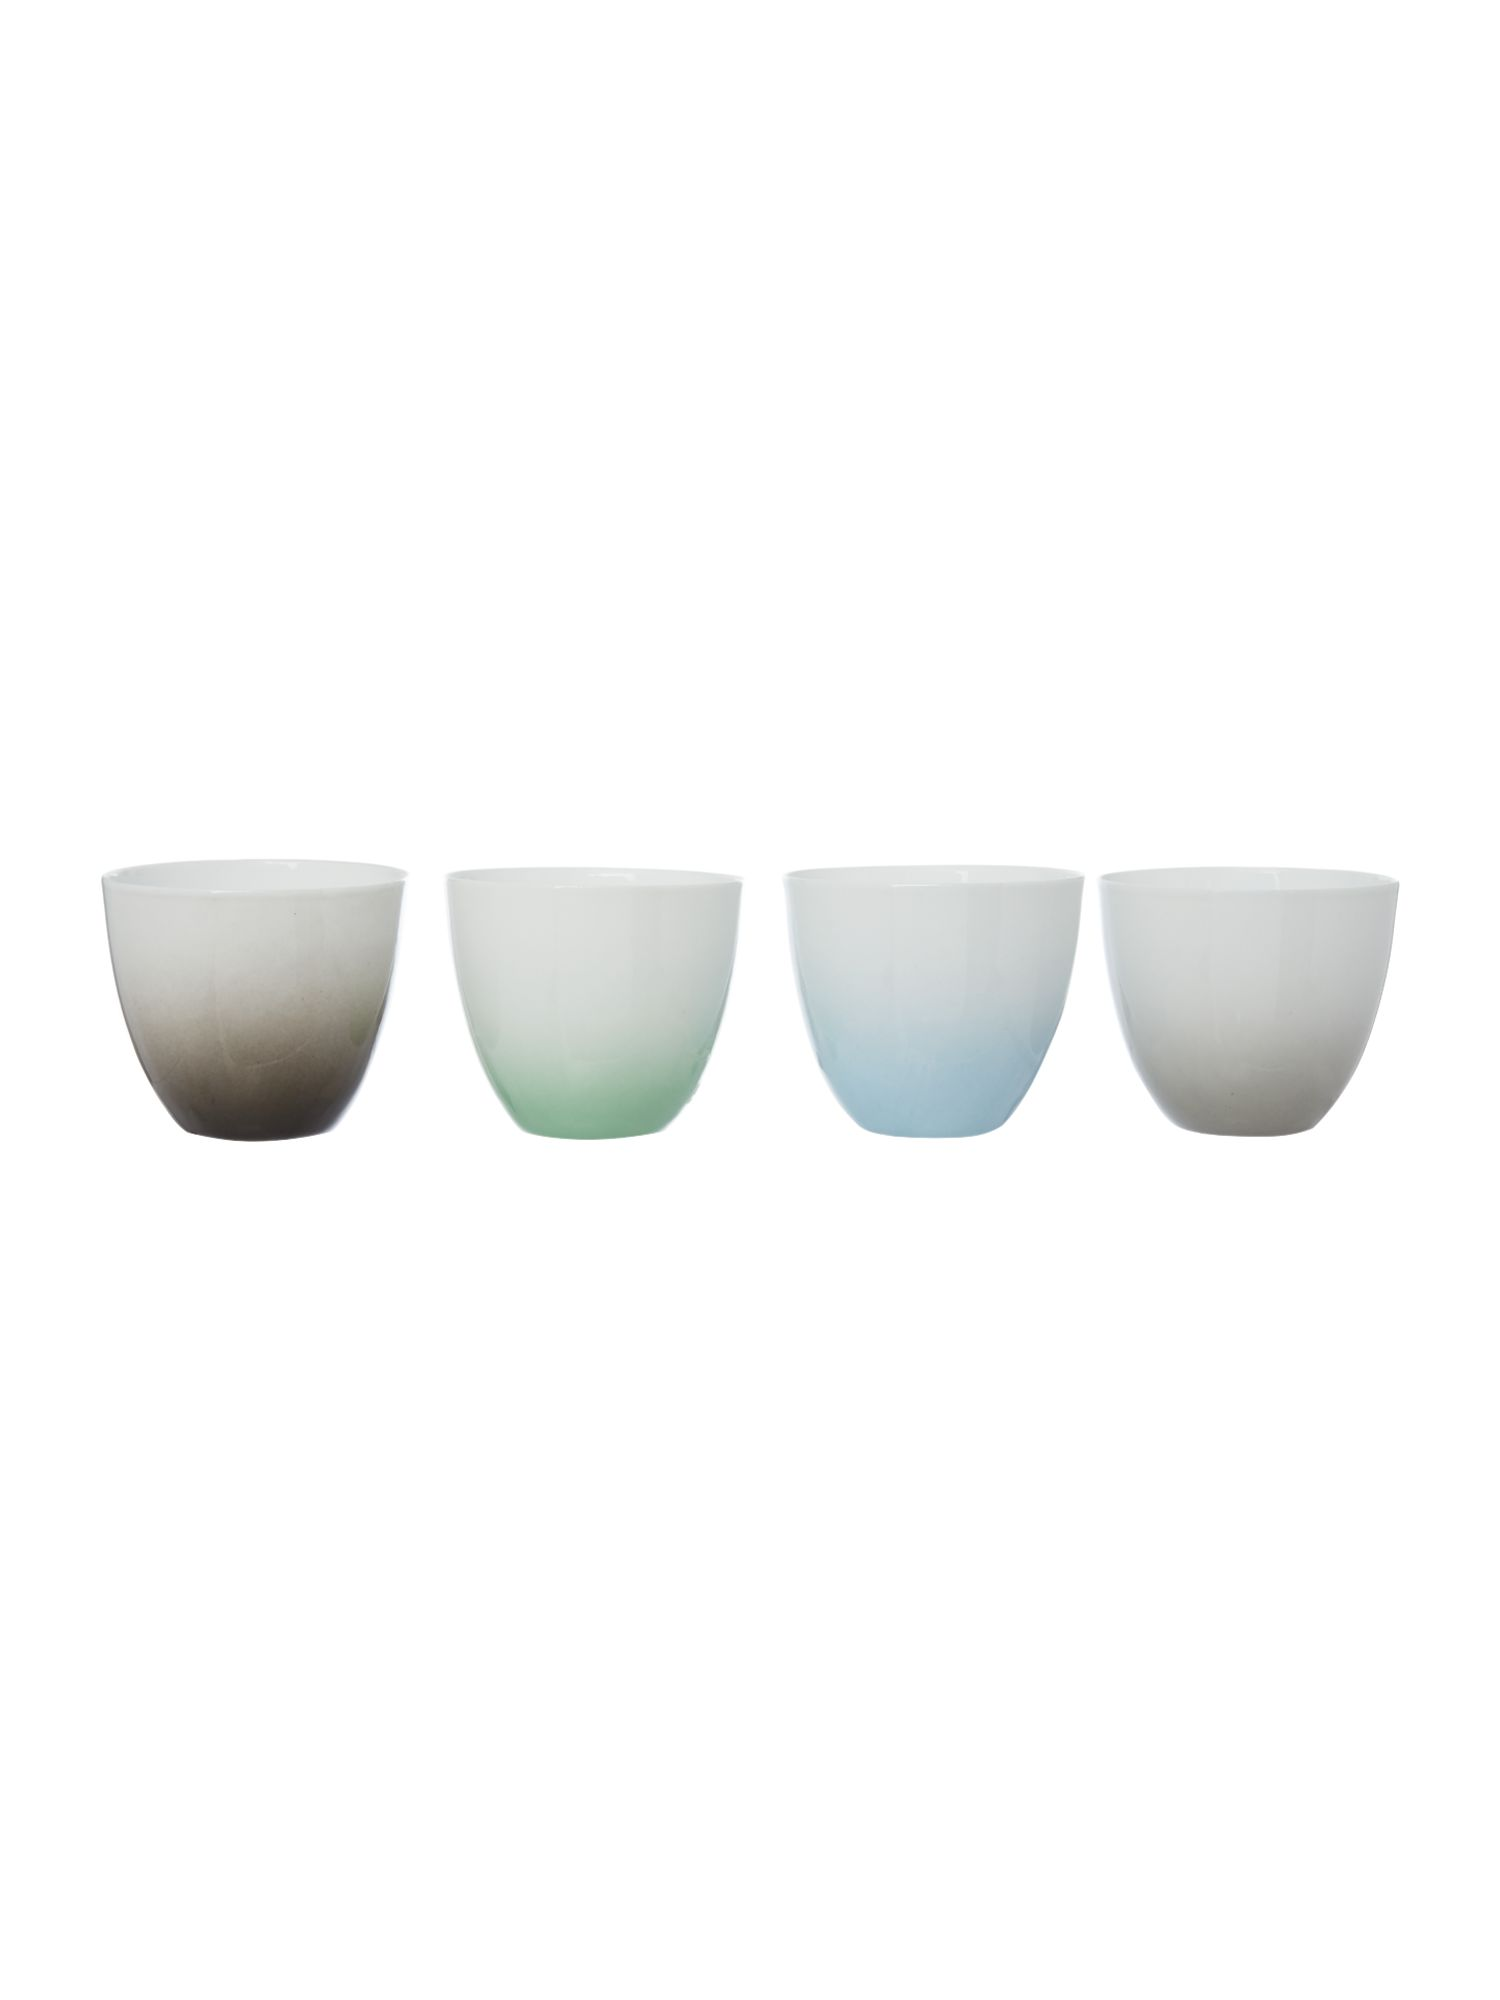 Image of Bloomingville Gradient coloured votives, set of 4